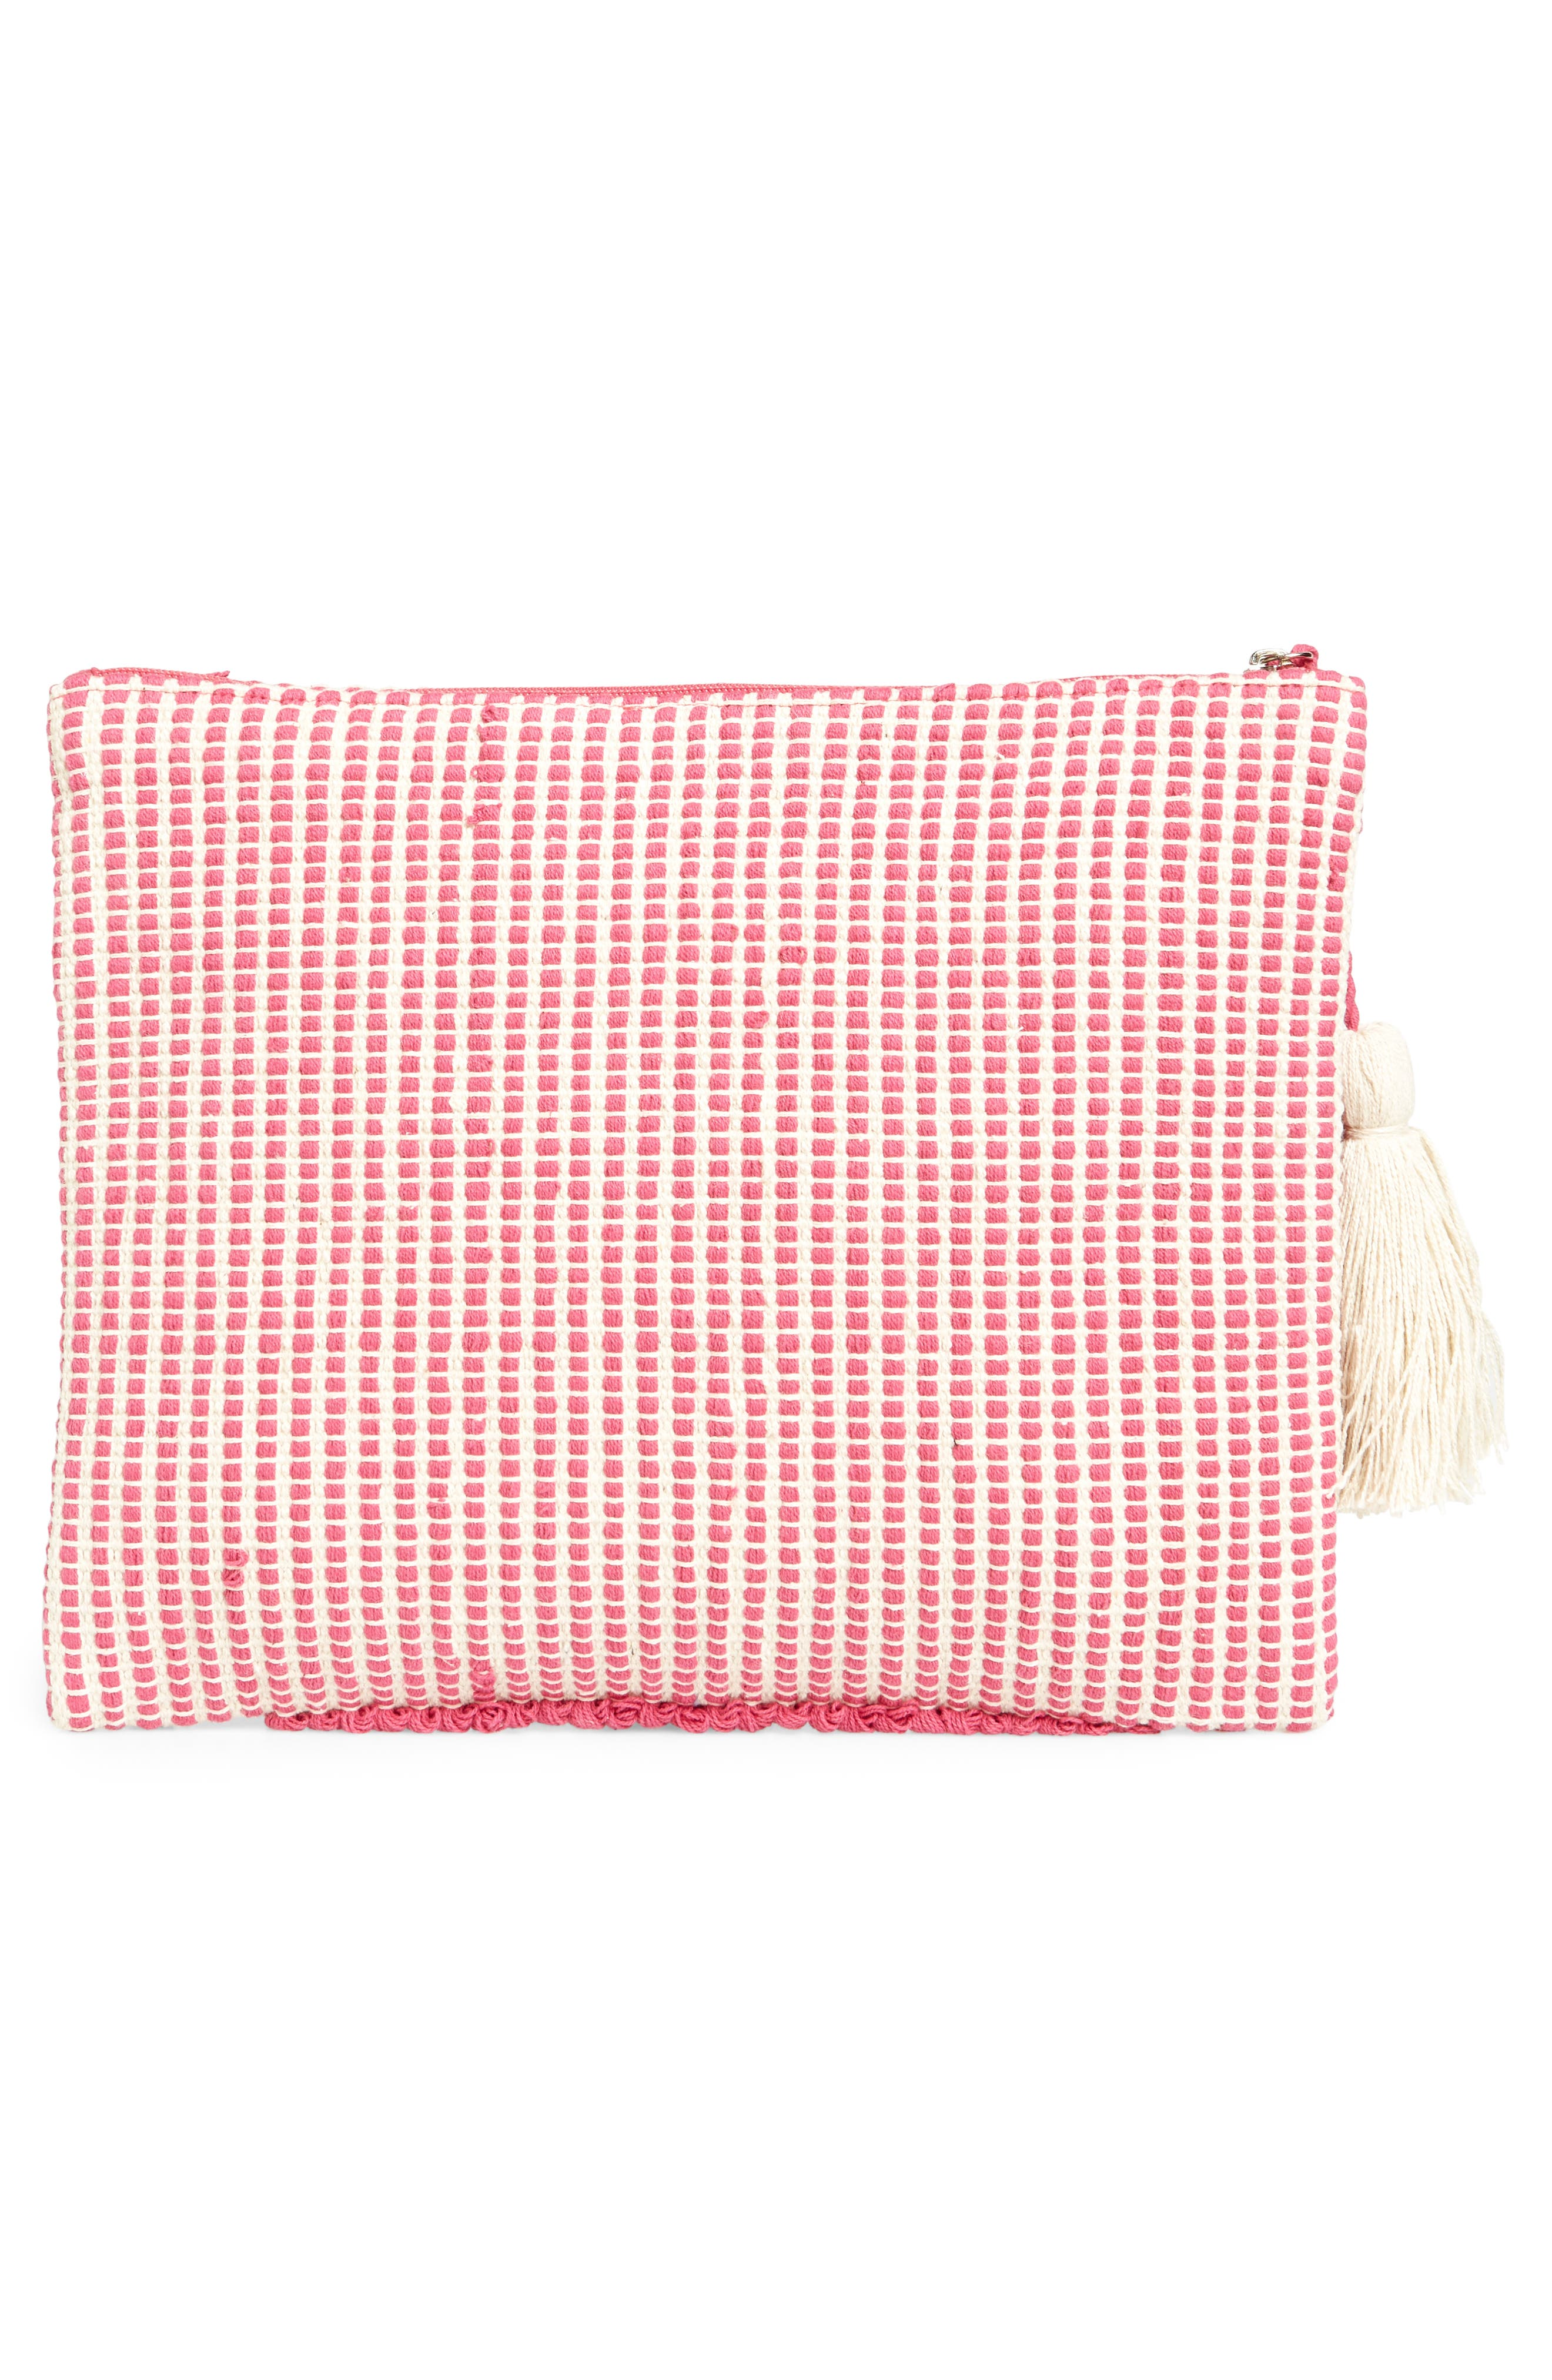 Palisades Tasseled Woven Clutch,                             Alternate thumbnail 3, color,                             655